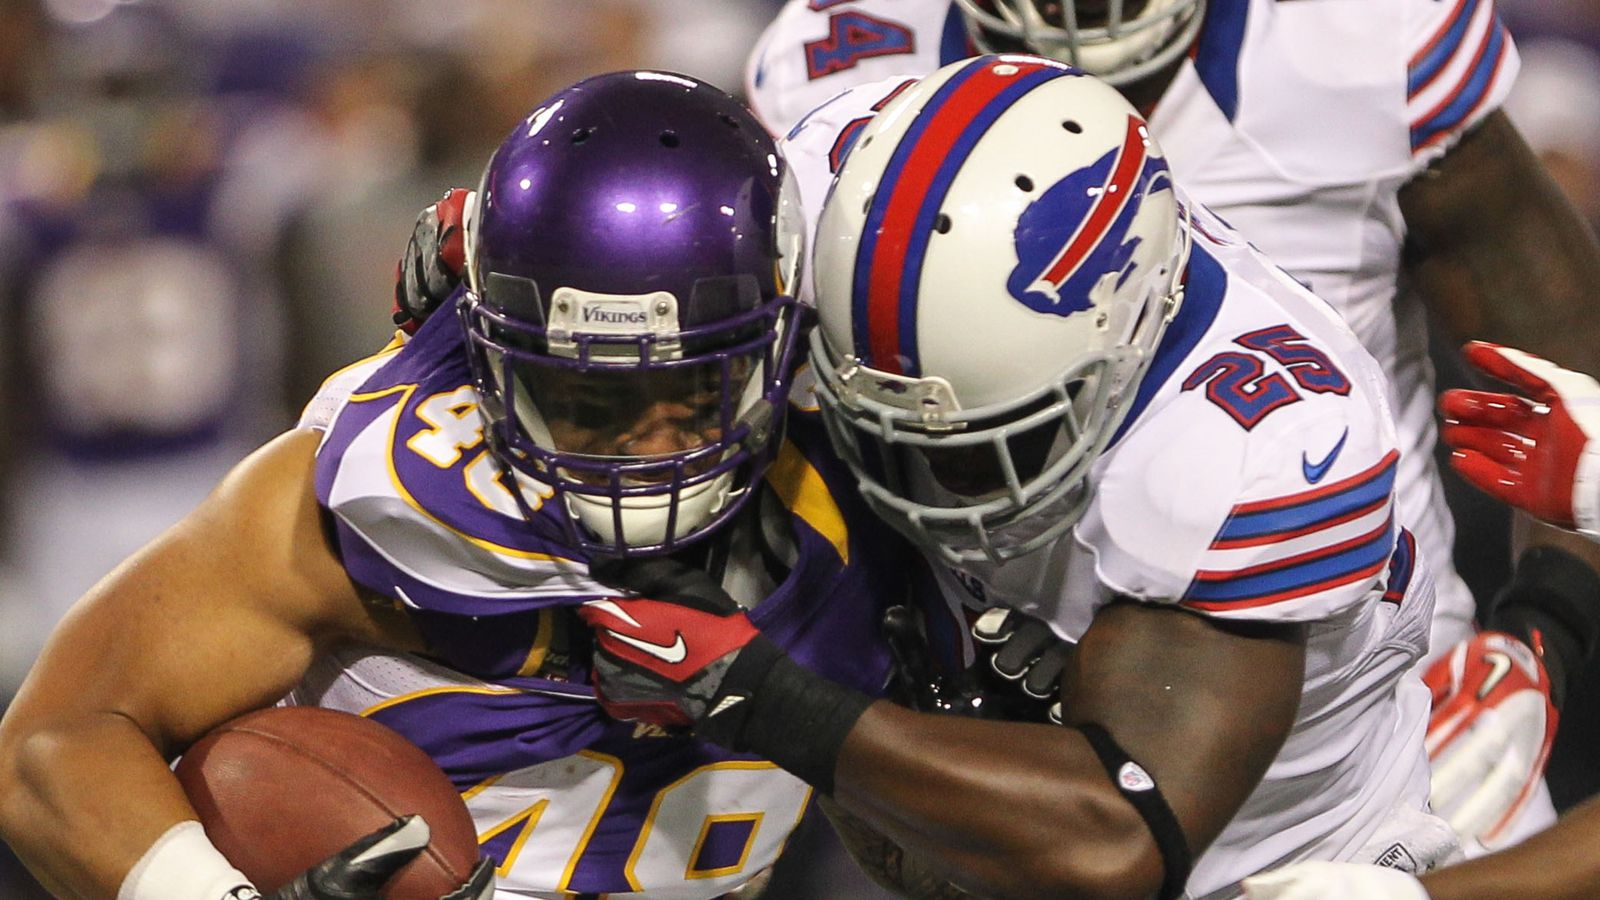 The Buffalo Bills are not at full strength in the backfield ahead of Week 3s game against the Minnesota Vikings LeSean McCoy was limited in practice dealing with